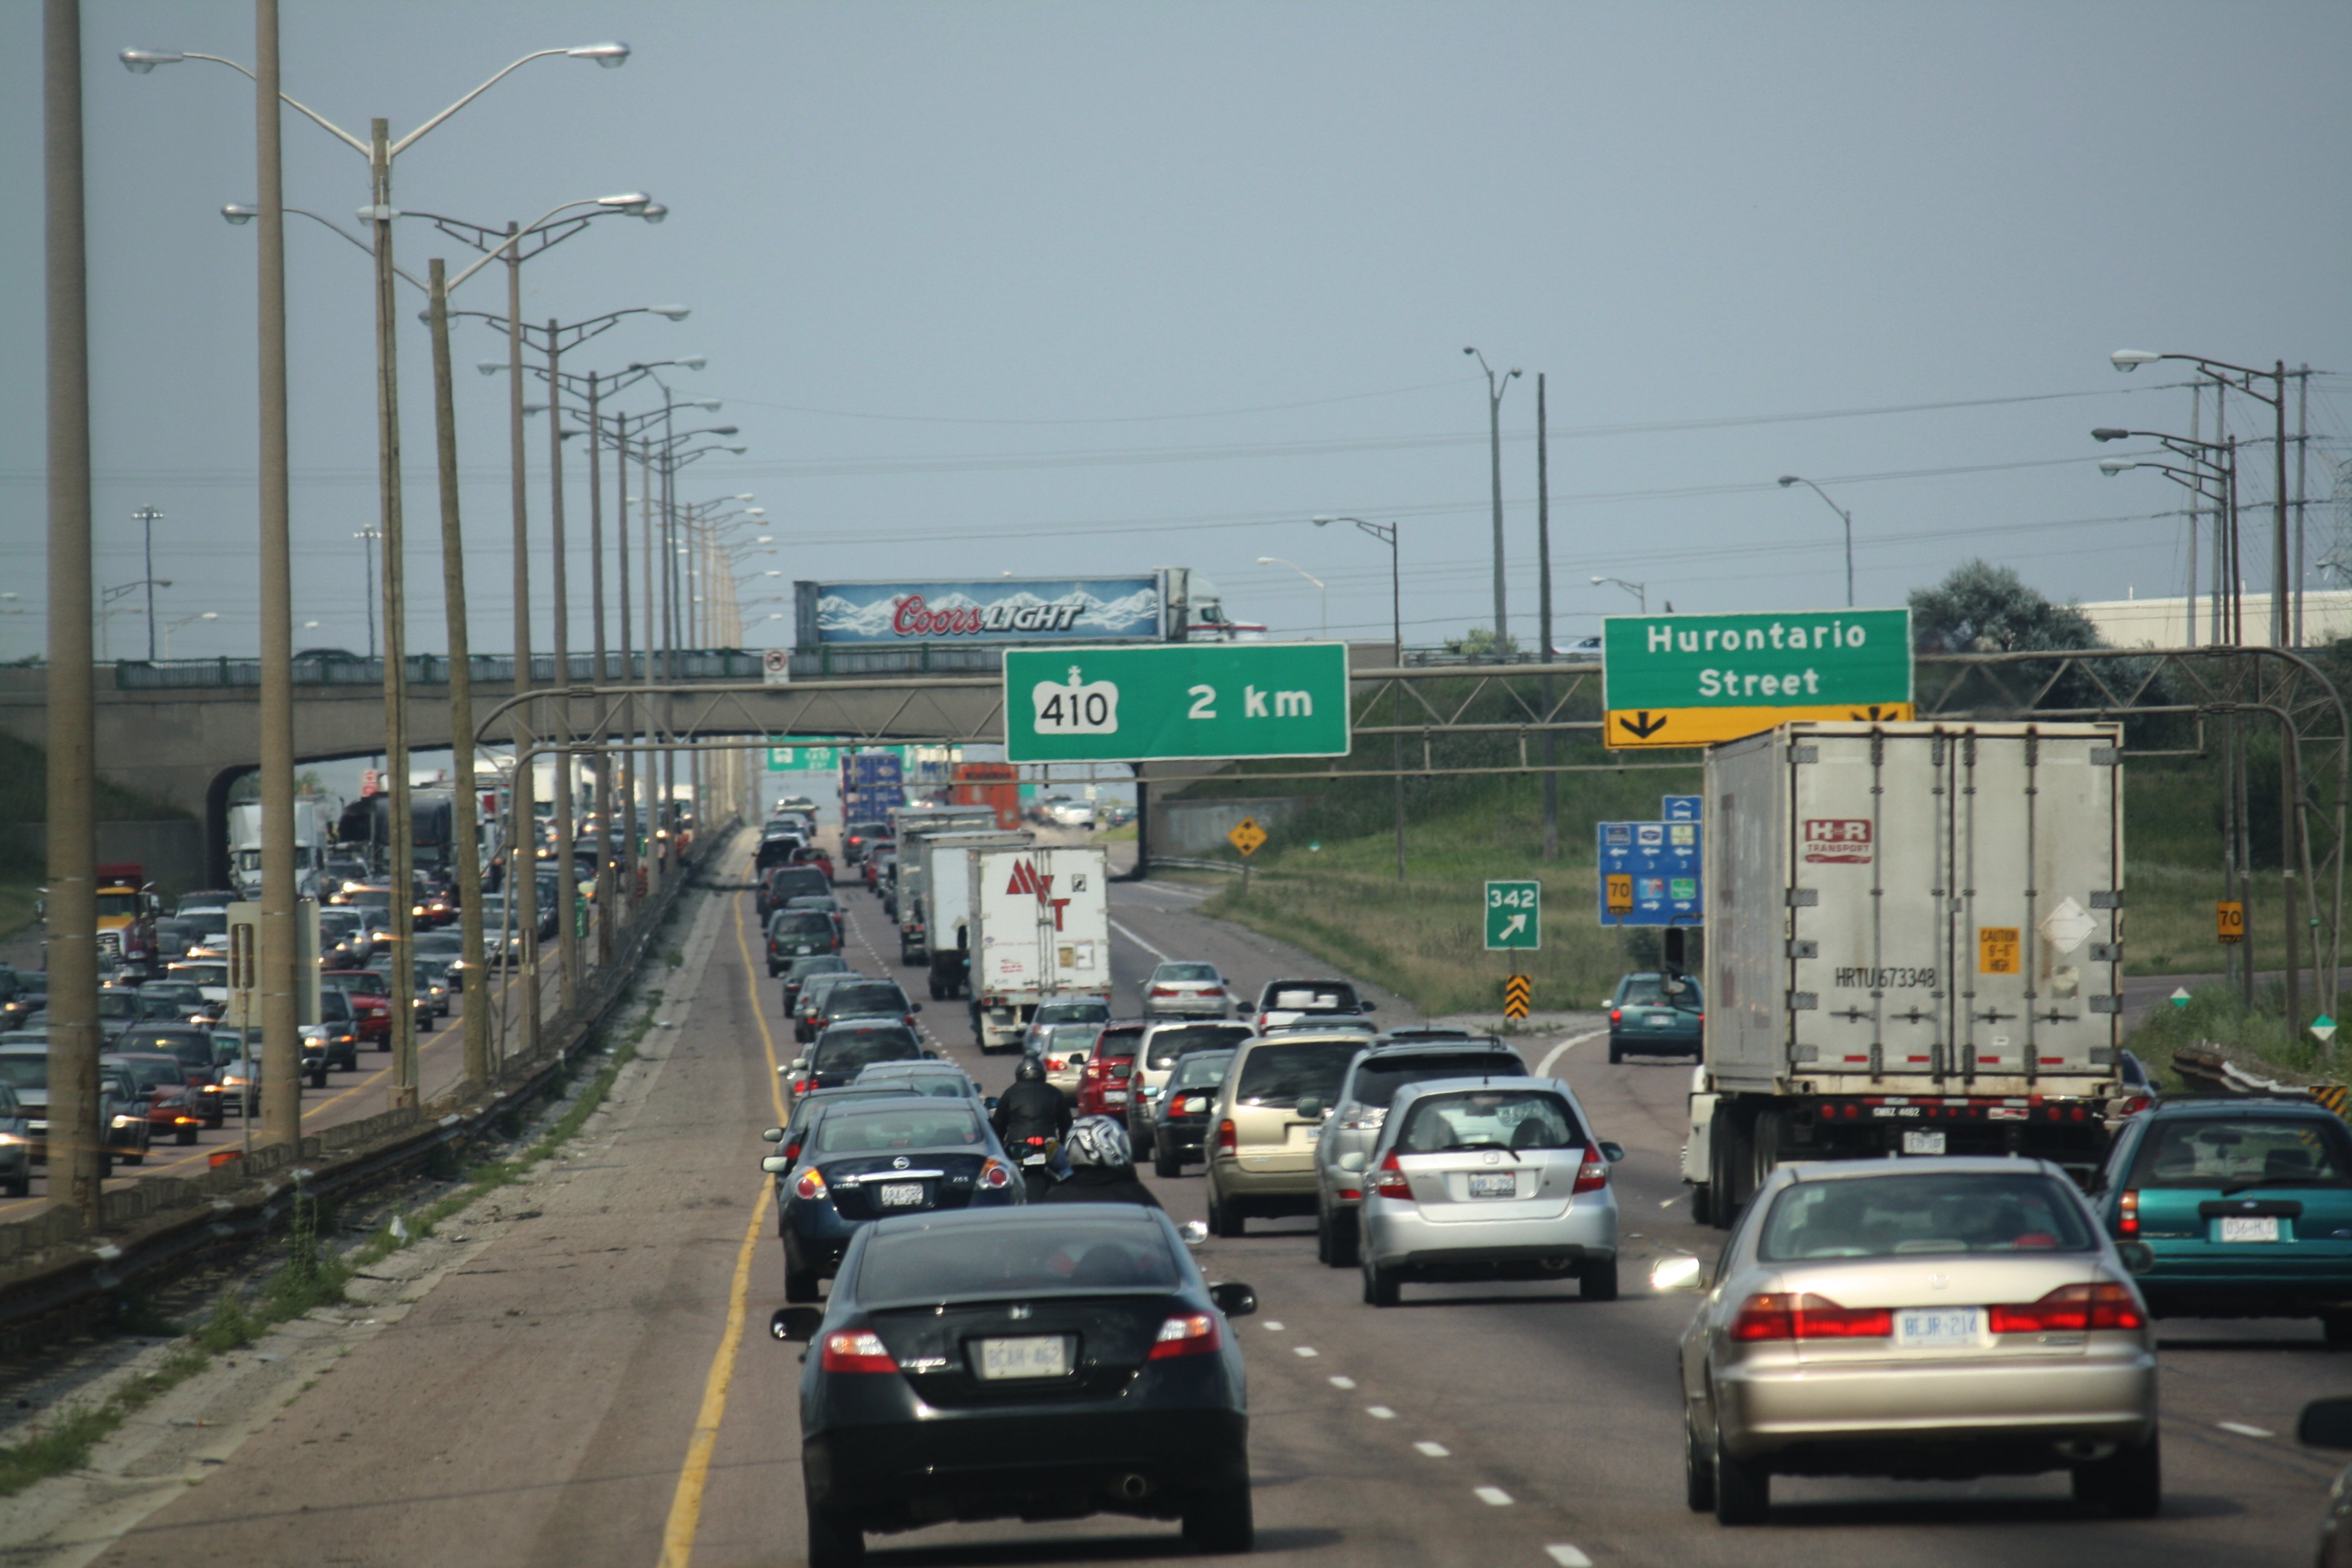 Avaiable Hurontario 401 Hwy Escort Mississauga Car St In